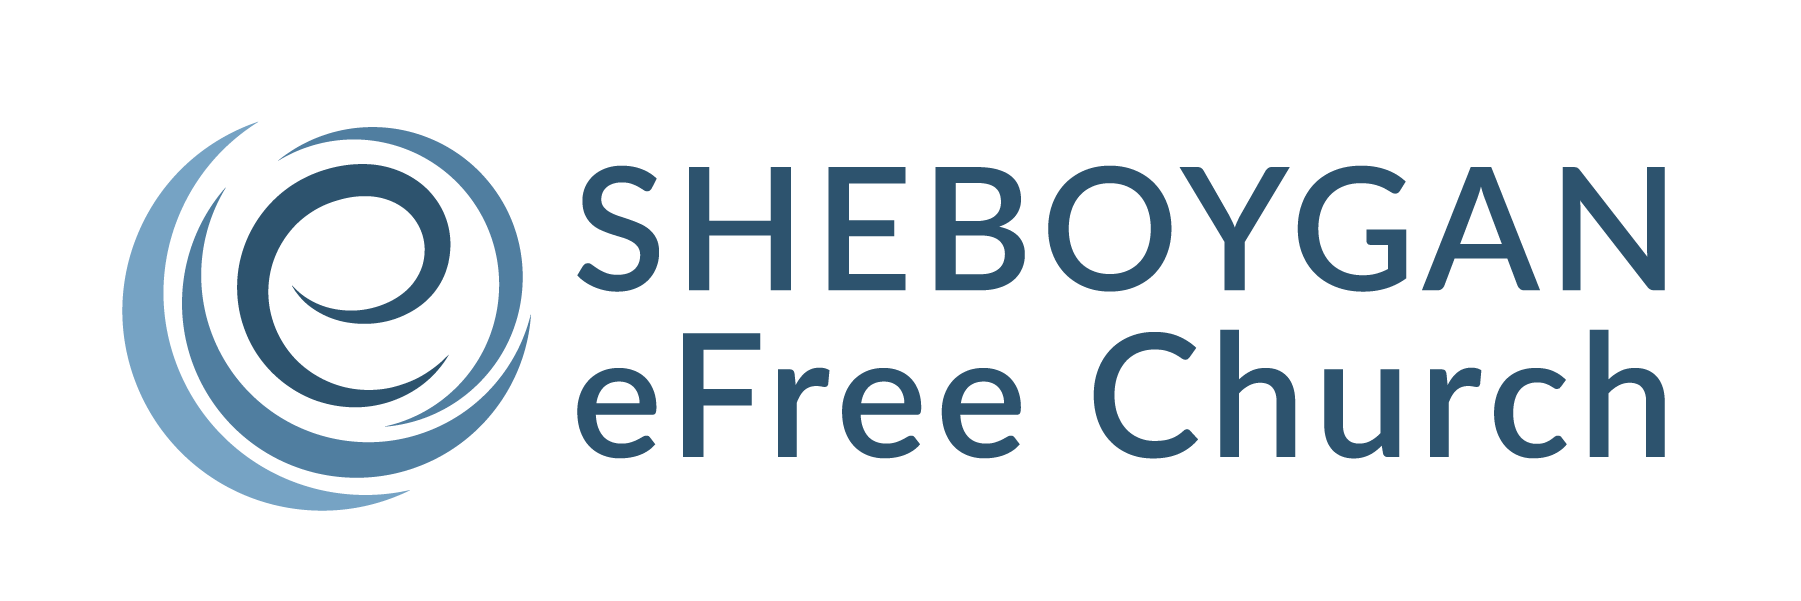 Sheboygan eFree Church